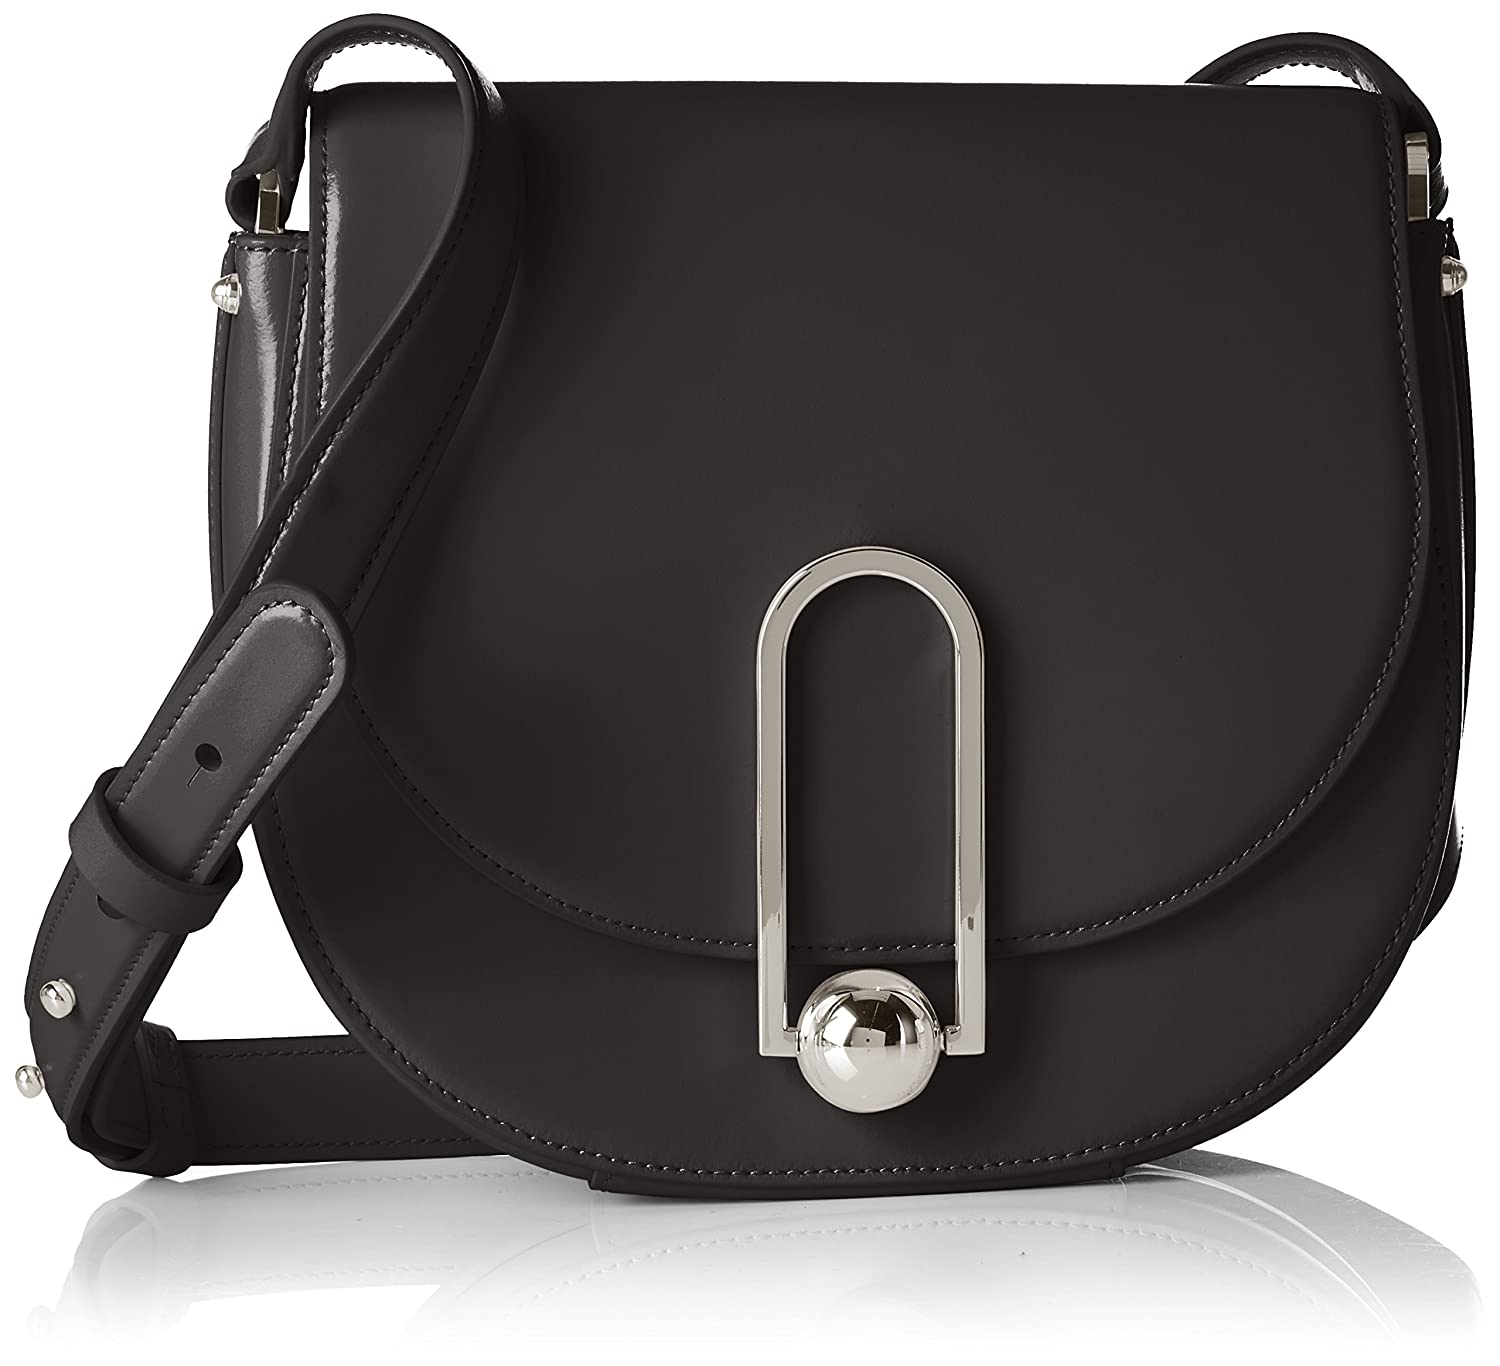 HUGO Women/'s Uptown Saddle Bag Shoulder Bag